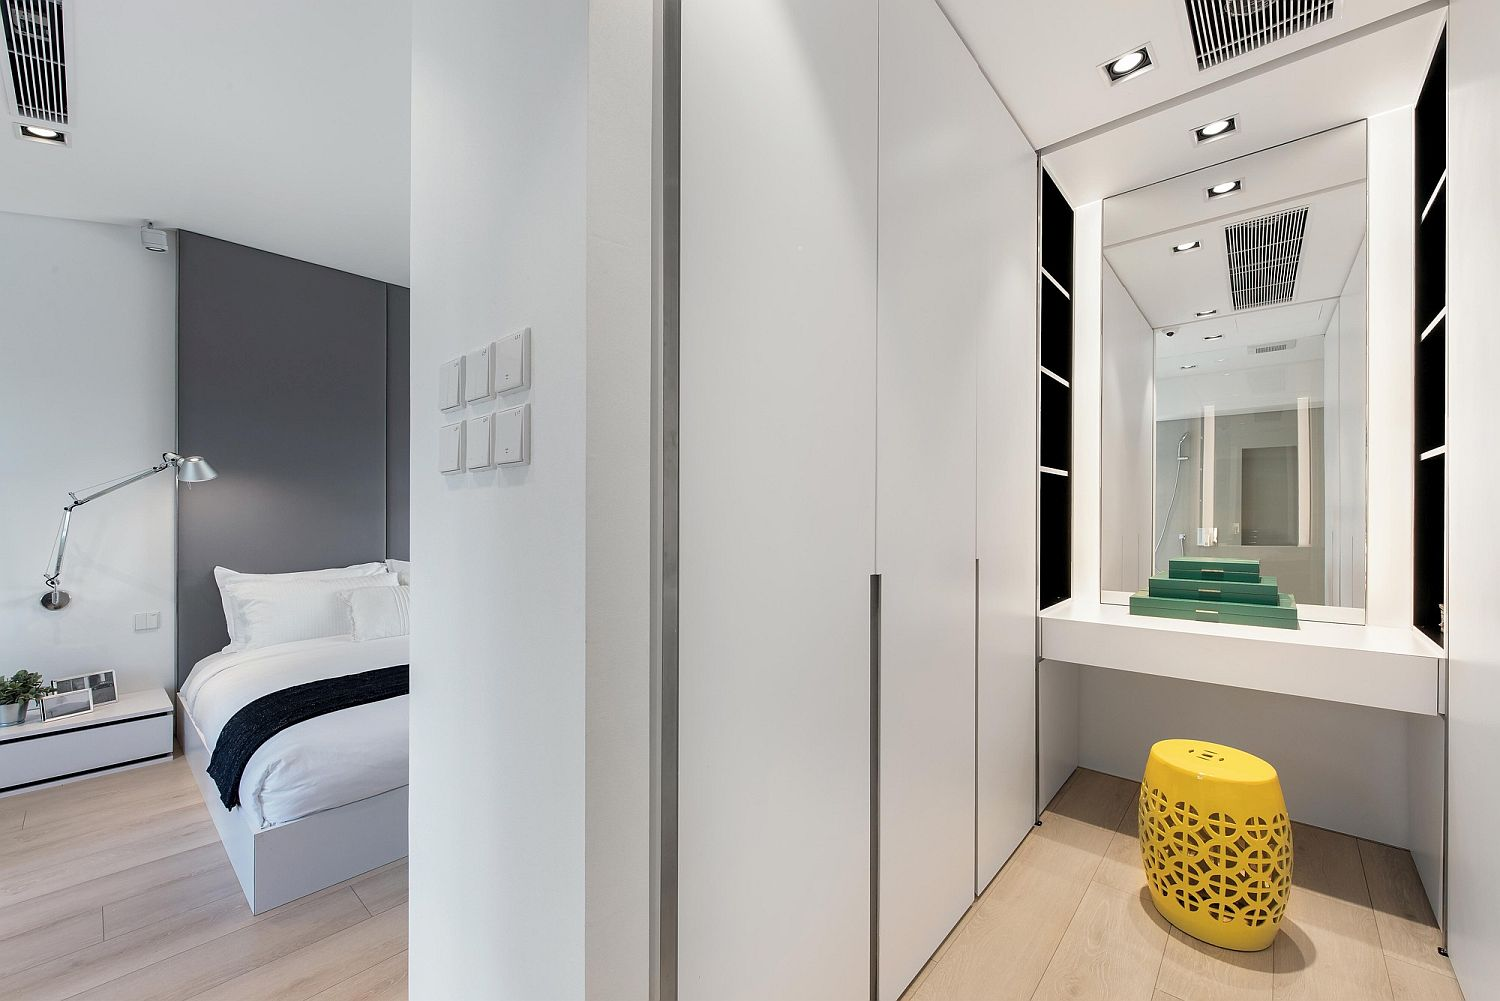 Master-bedroom-and-bathroom-in-white-with-wooden-flooring